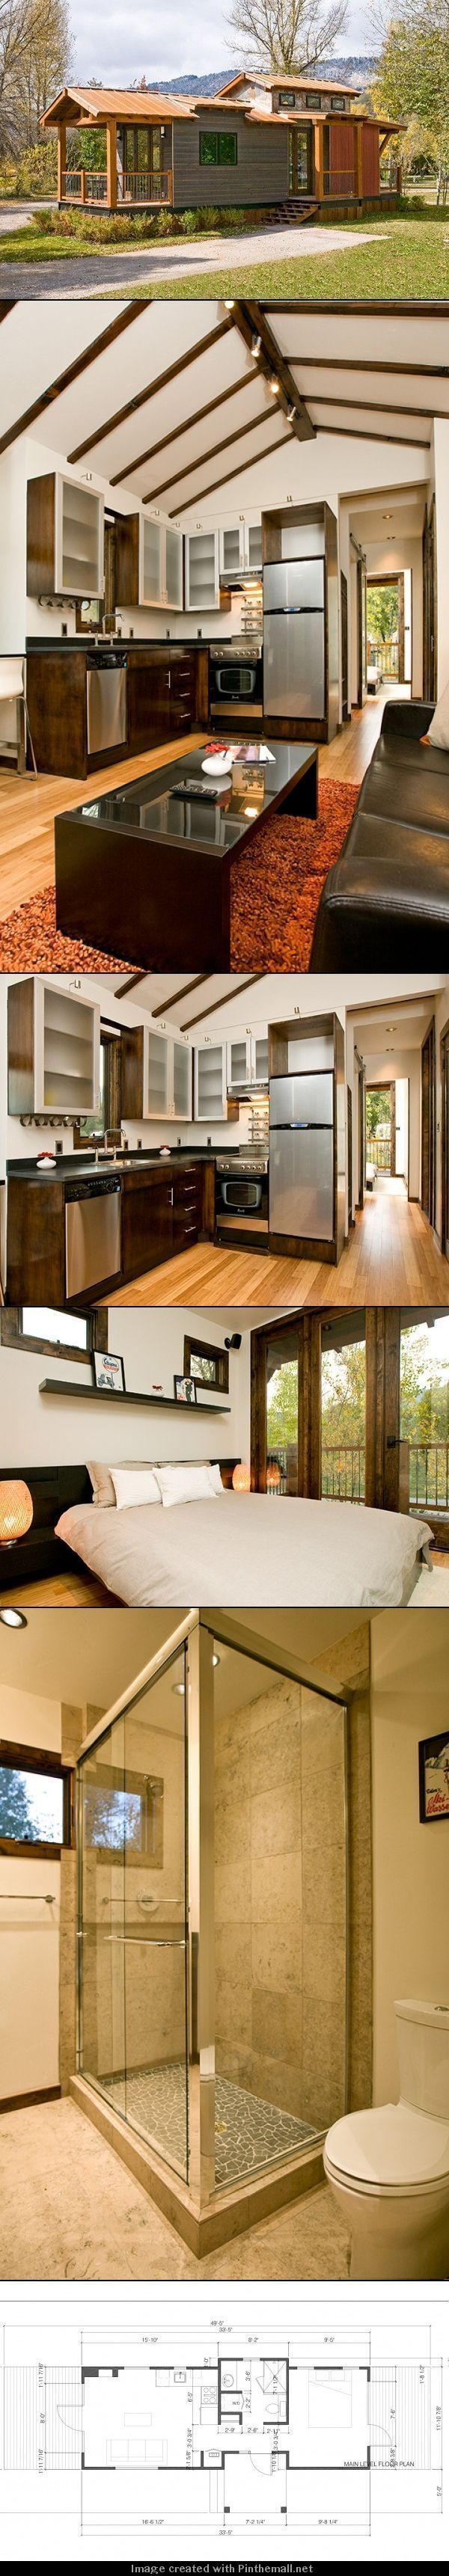 Best 25 park model rv ideas on pinterest hole park sip for Best heating system for small house